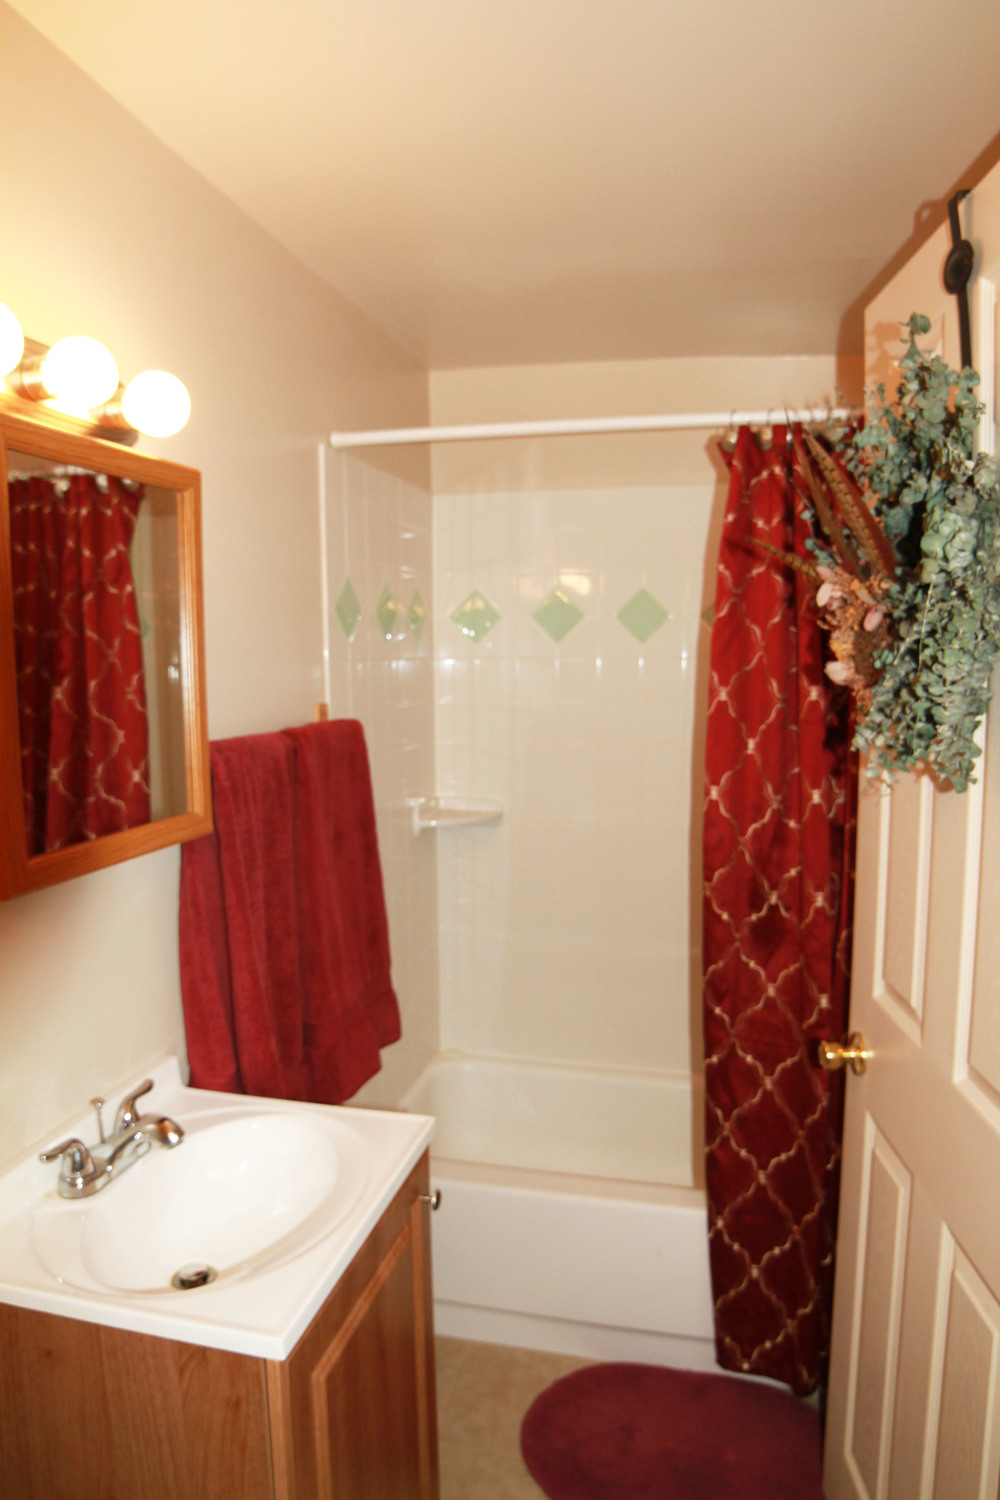 Our bathrooms feature two separate sinks and storage areas, along with a large shower and tub. The tile is new in most of our units!